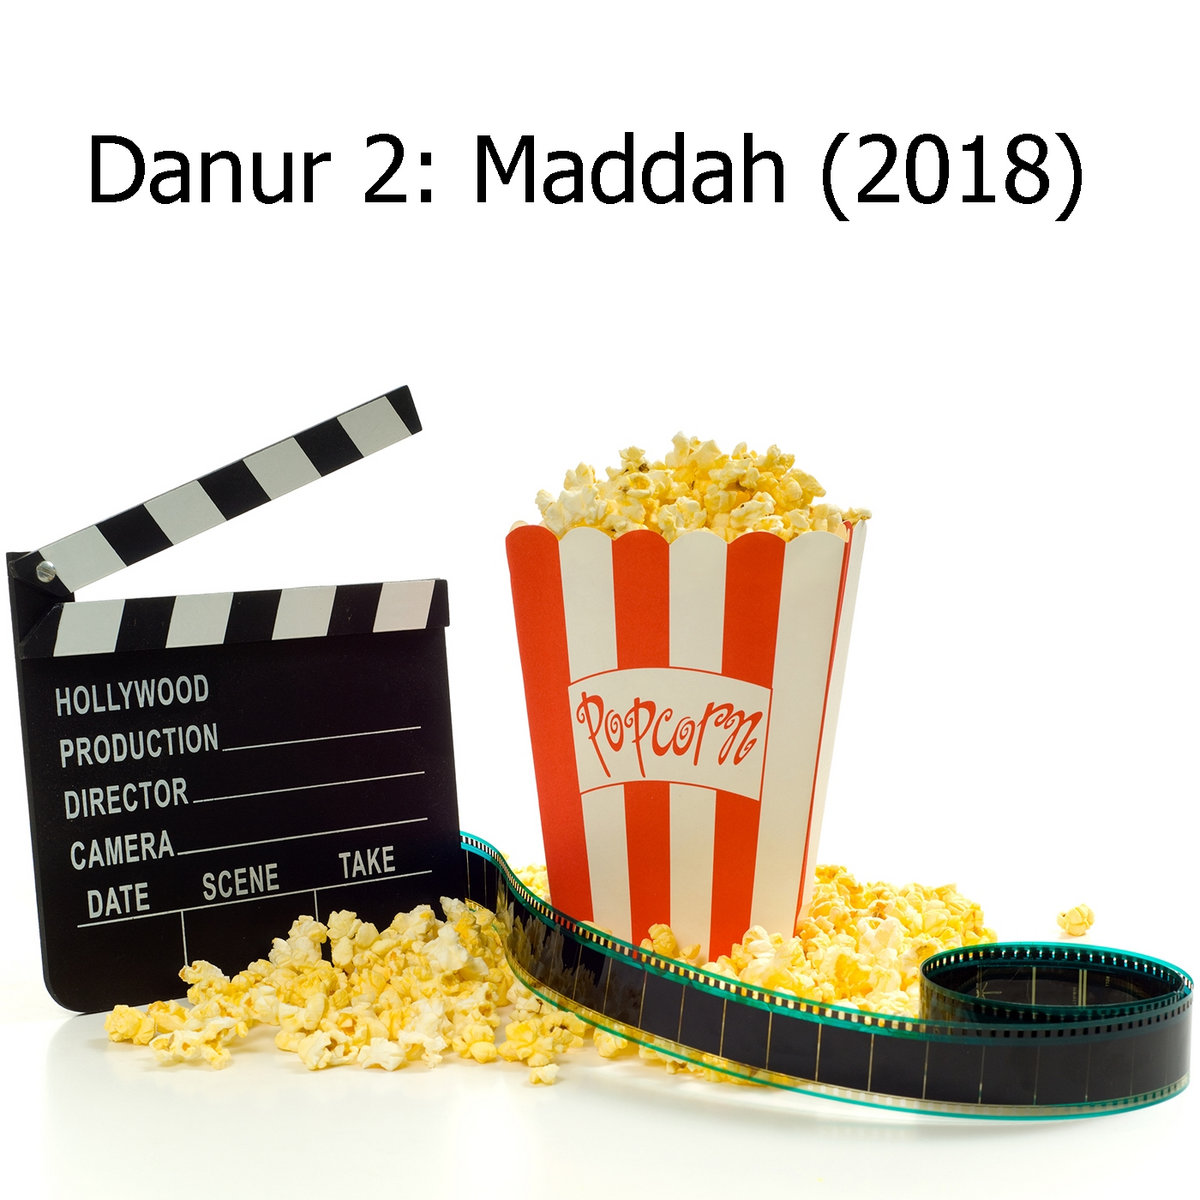 Cinema Danur 2 Maddah Online Stream 50 Avi Booksrudetapde